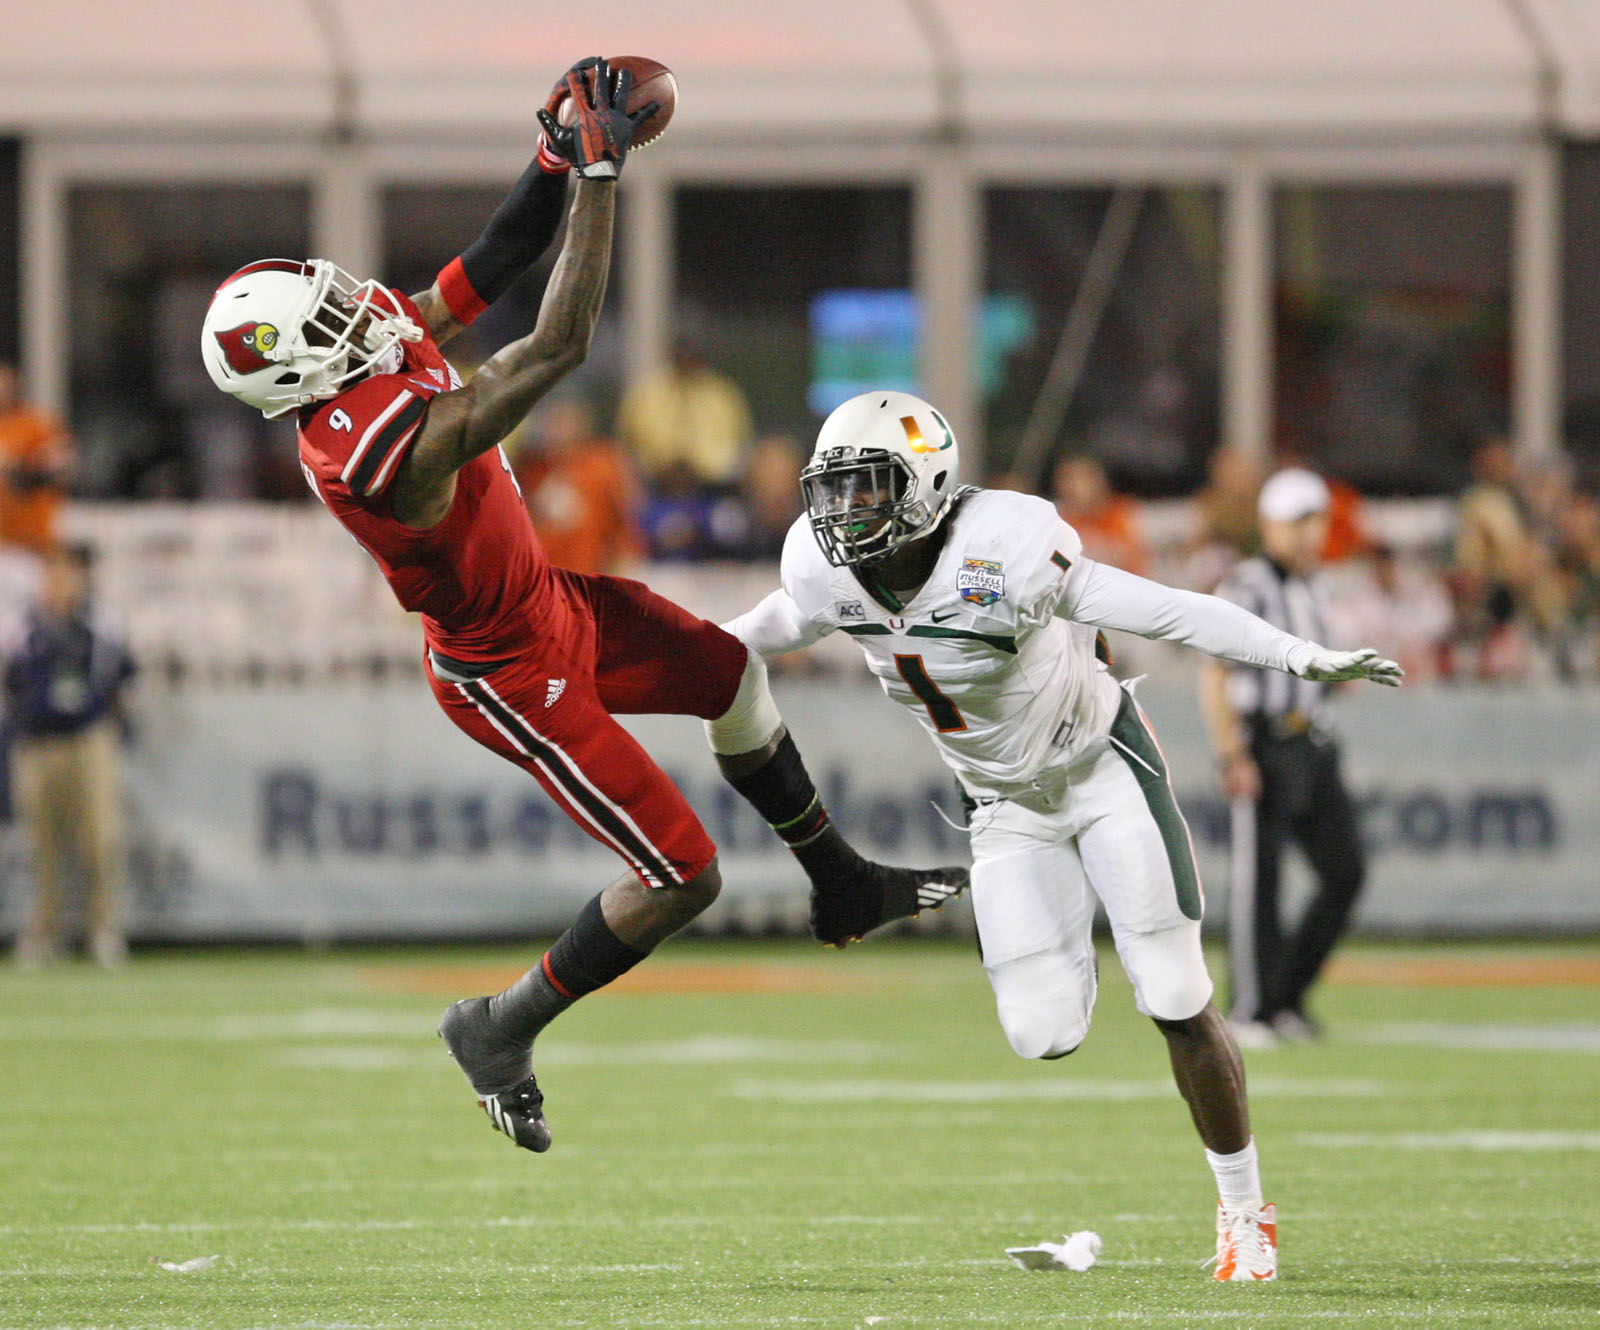 Louisville Cardinals wide receiver DeVante Parker (9) catches a pass while defended by Miami Hurricanes defensive back Artie Burns (1) during the second half of the Russell Athletic Bowl at Florida Citrus Bowl Stadium. (Rob Foldy/USA TODAY Sports)